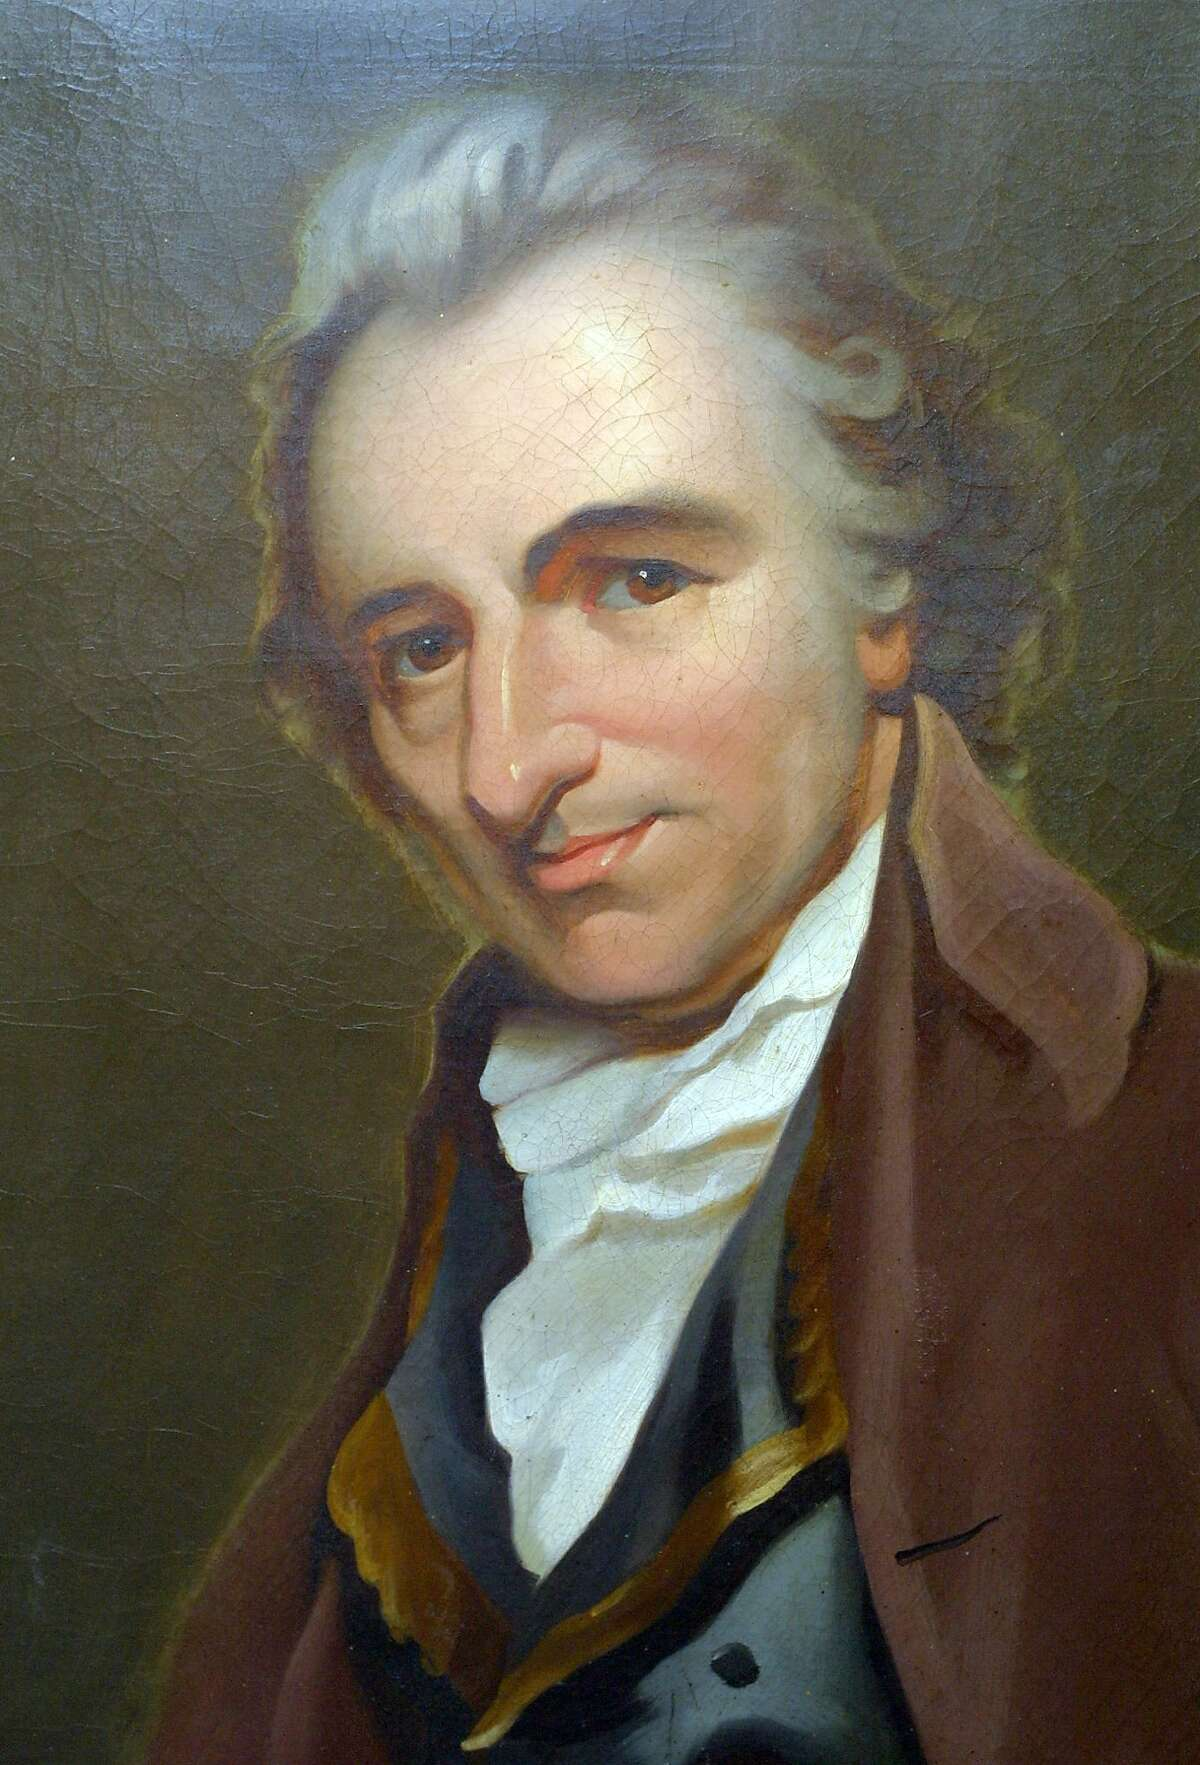 A portrait of Thomas Paine is shown hanging in the Thomas Paine Memorial Museum in New Rochelle, N.Y., Friday. March 30, 2001. A concerted effort is being made to ensure Paine a rightful place in history as a pre-eminent founder of the United States. (AP Photo/Stuart Ramson)